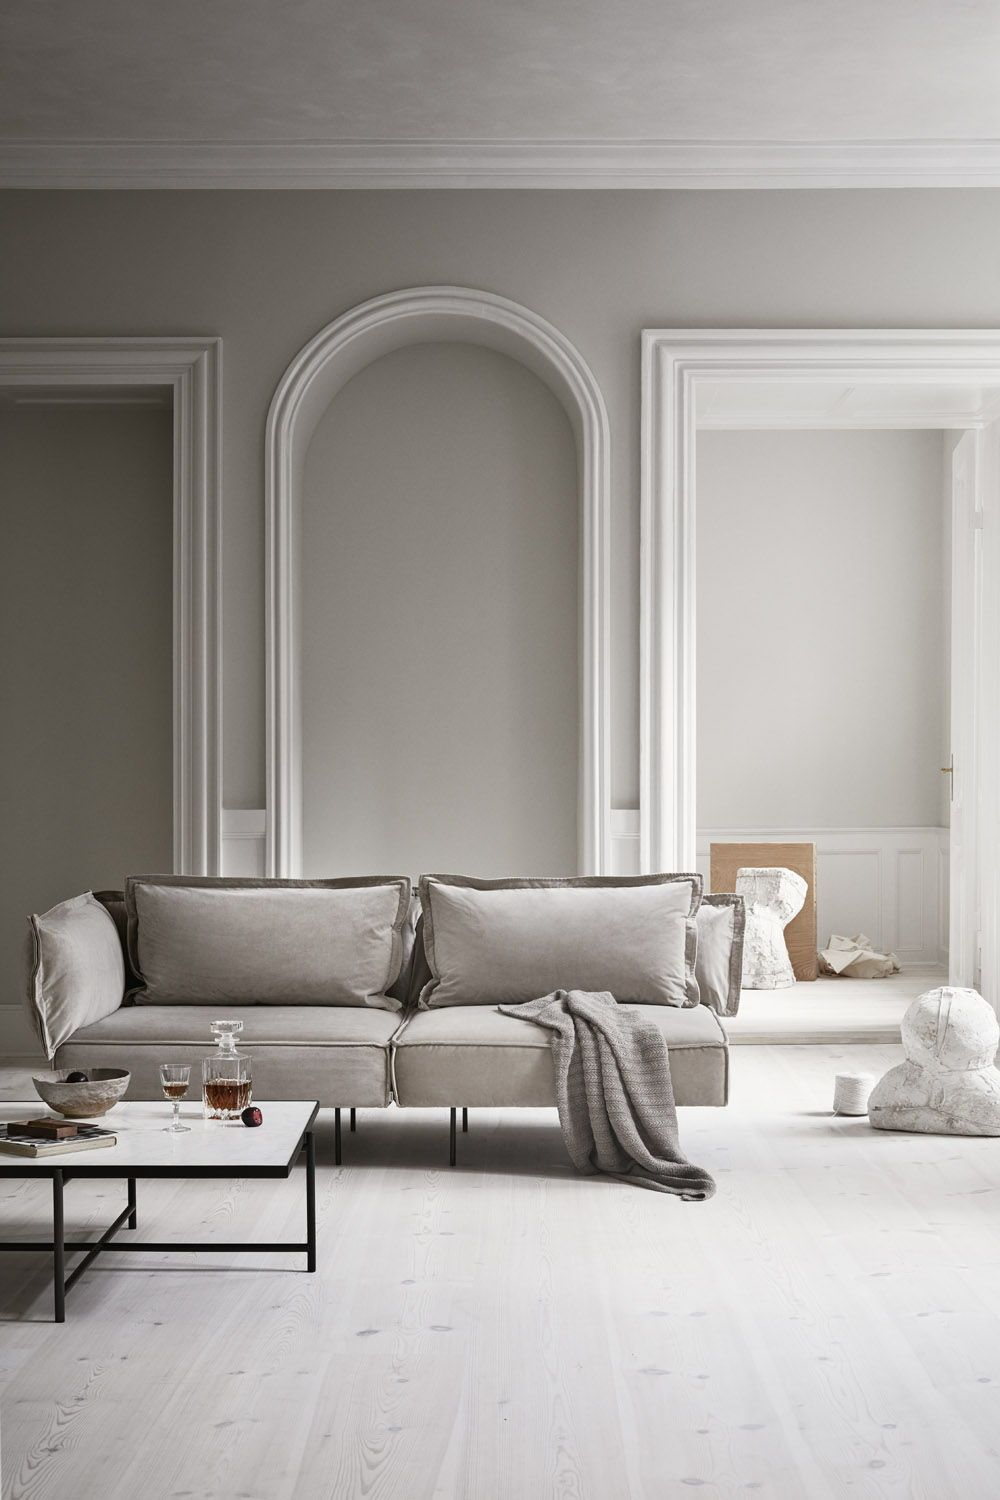 Two Seat Sofa Sand Velvet Truly Customizable Inspired By Italian Grandeur With A Touch Of Scandinav Minimalism Interior Interior Design Danish Furniture Design